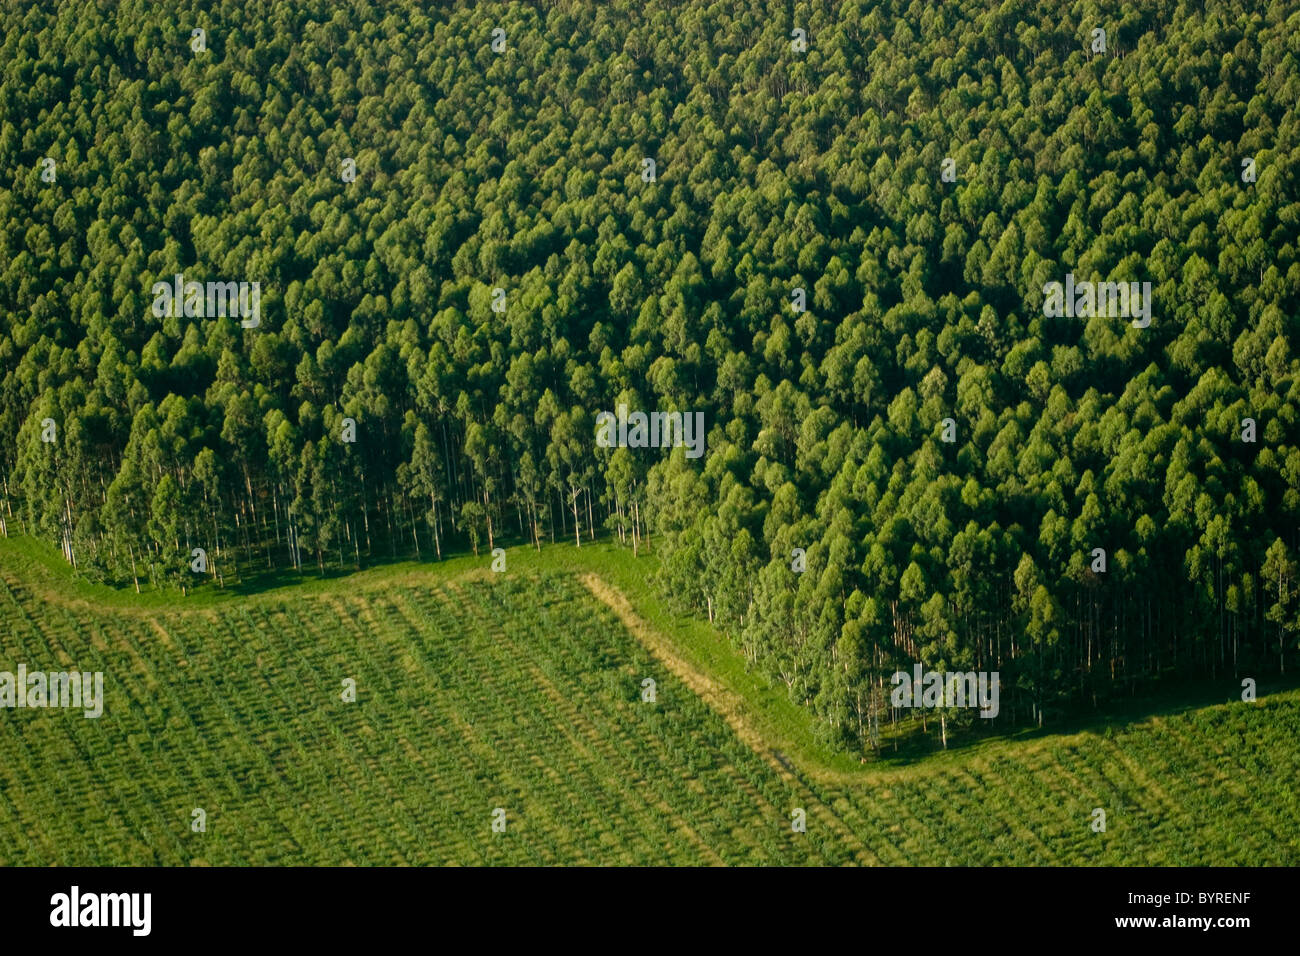 Aerial View Of Eucalyptus Trees At A Commercial Tree Farm Harvested Stock Photo Alamy